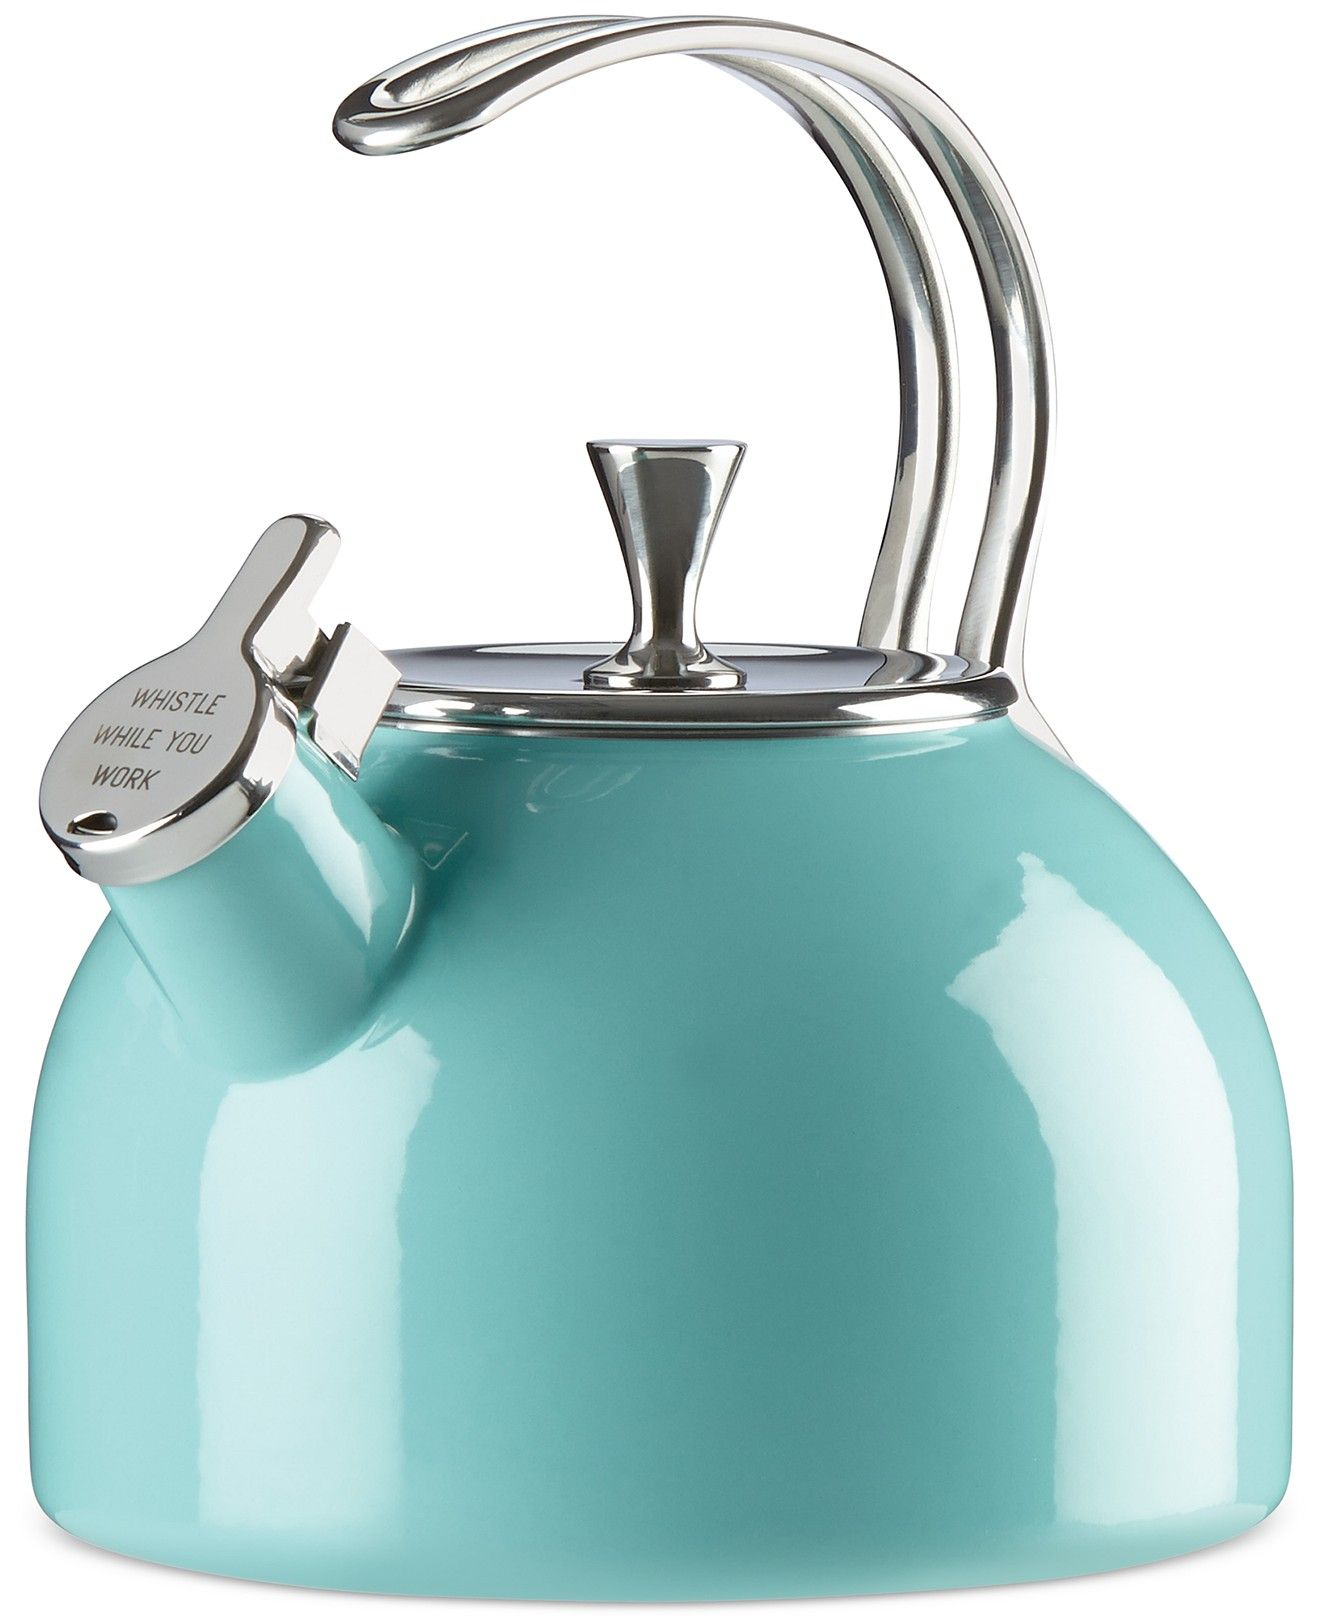 kate spade new york all in good taste Tea Kettle & Reviews - Kitchen Gadgets - Kitchen - Macy's